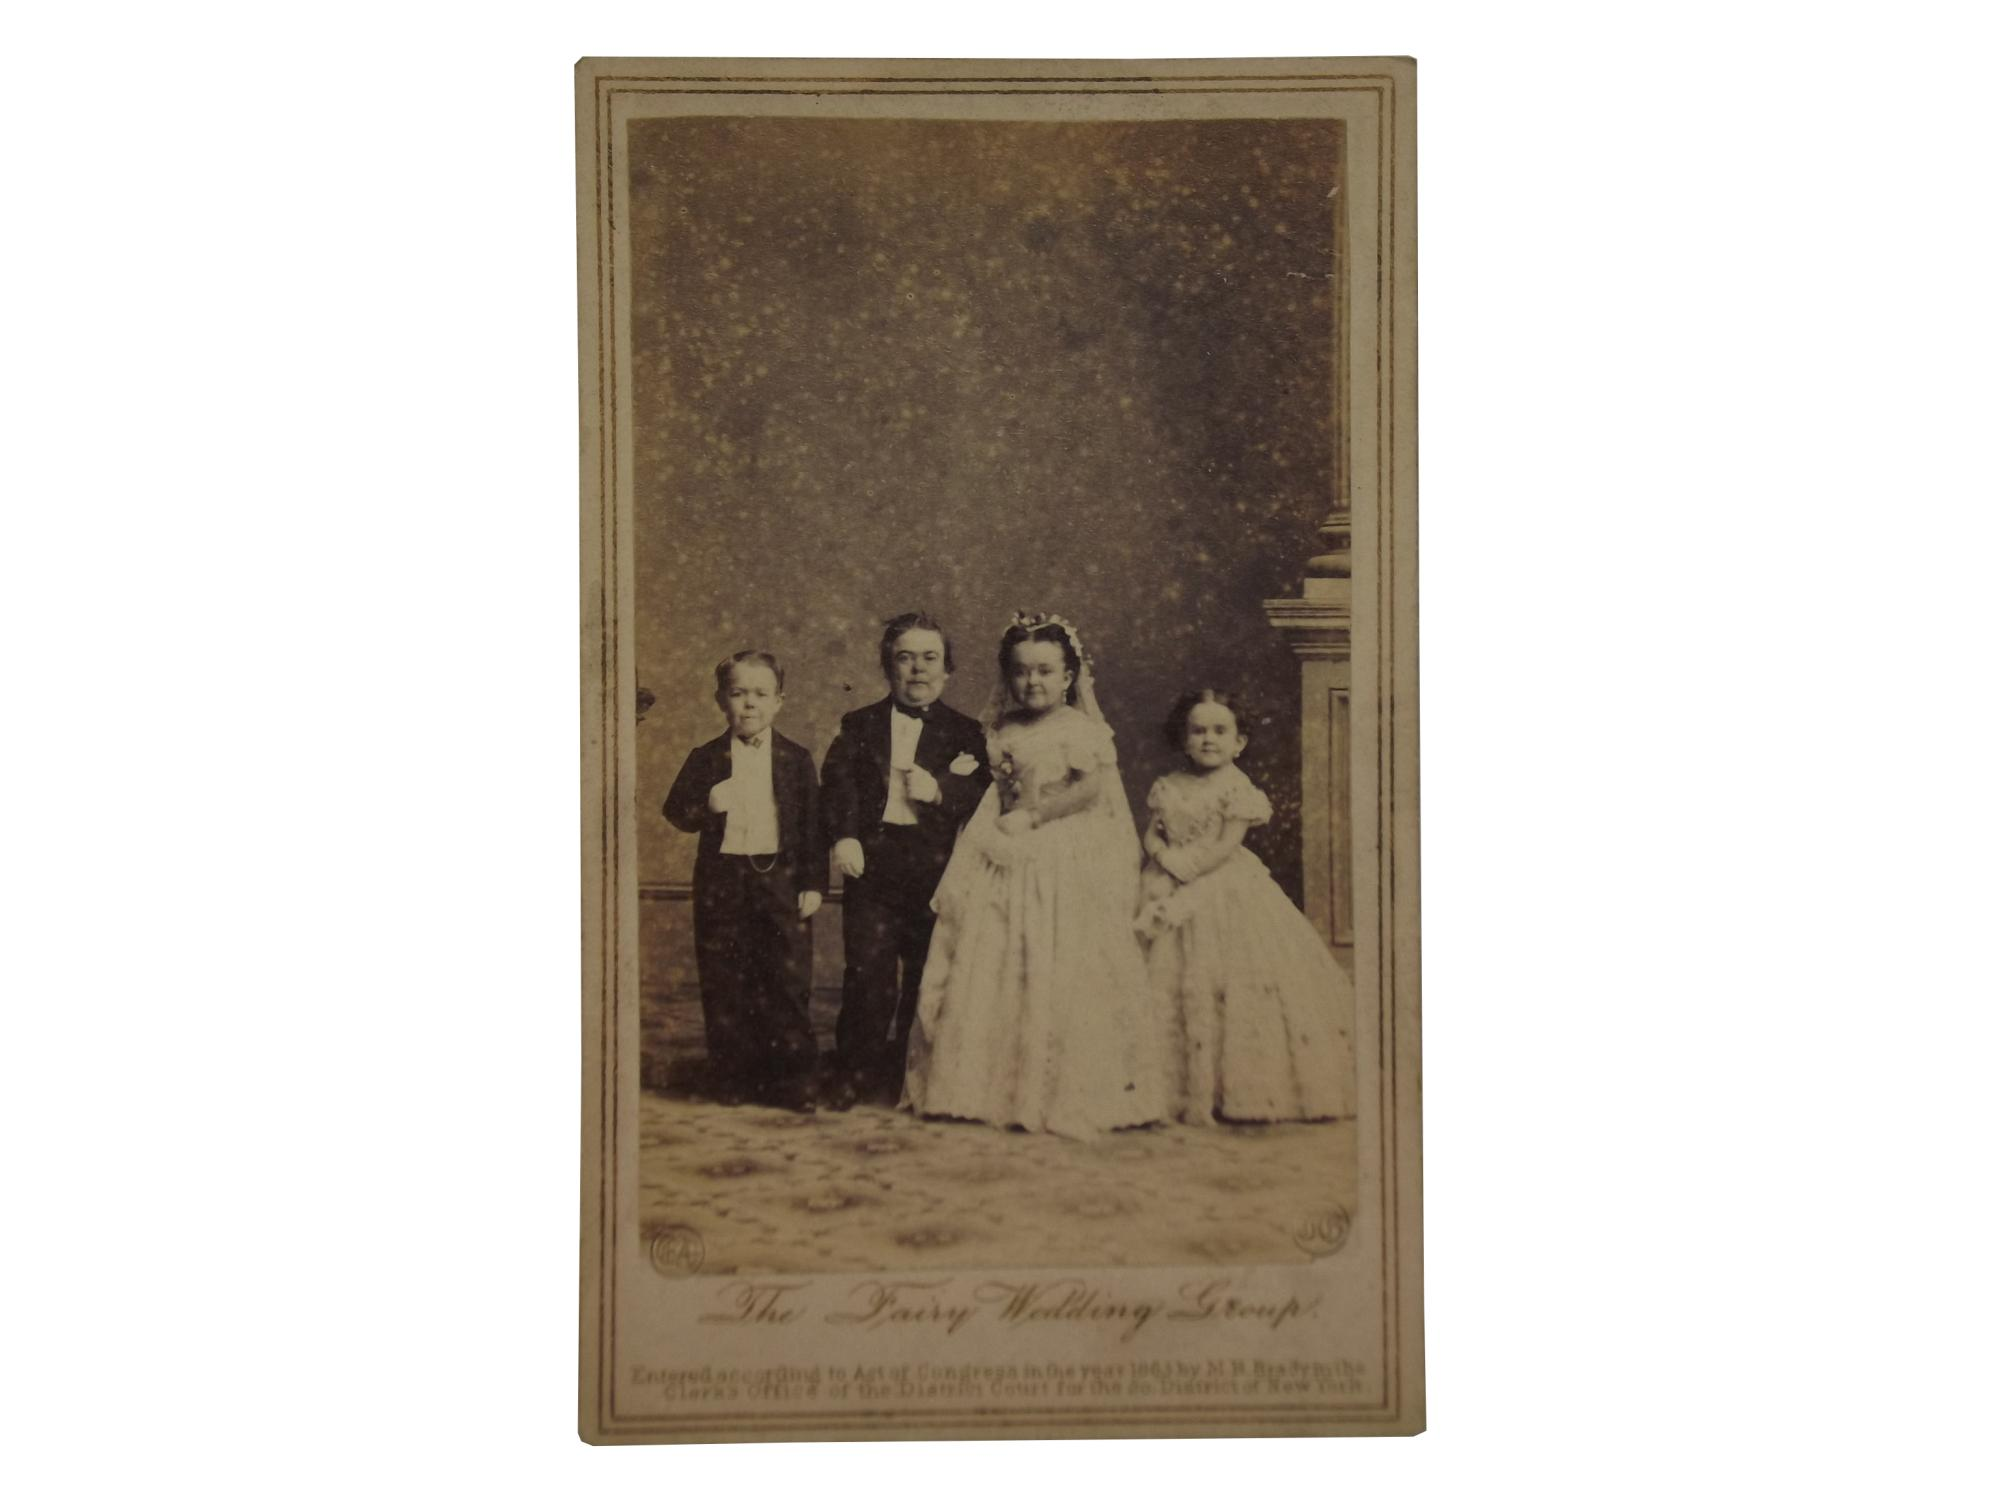 Carte De Visite Of The Fairy Wedding Group